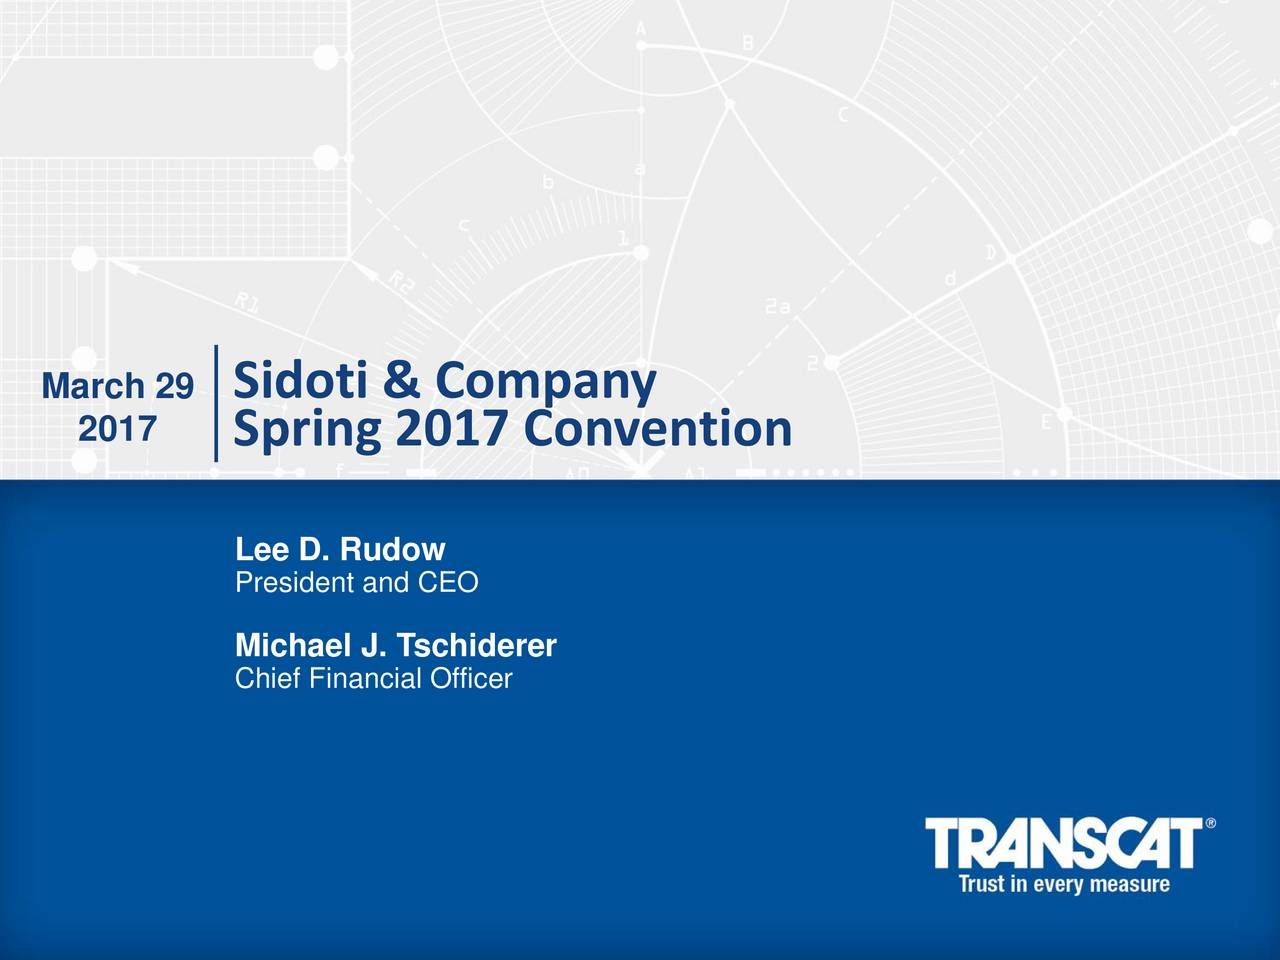 2017 Spring 2017 Convention Lee D. Rudow President and CEO Michael J. Tschiderer Chief Financial Officer 1